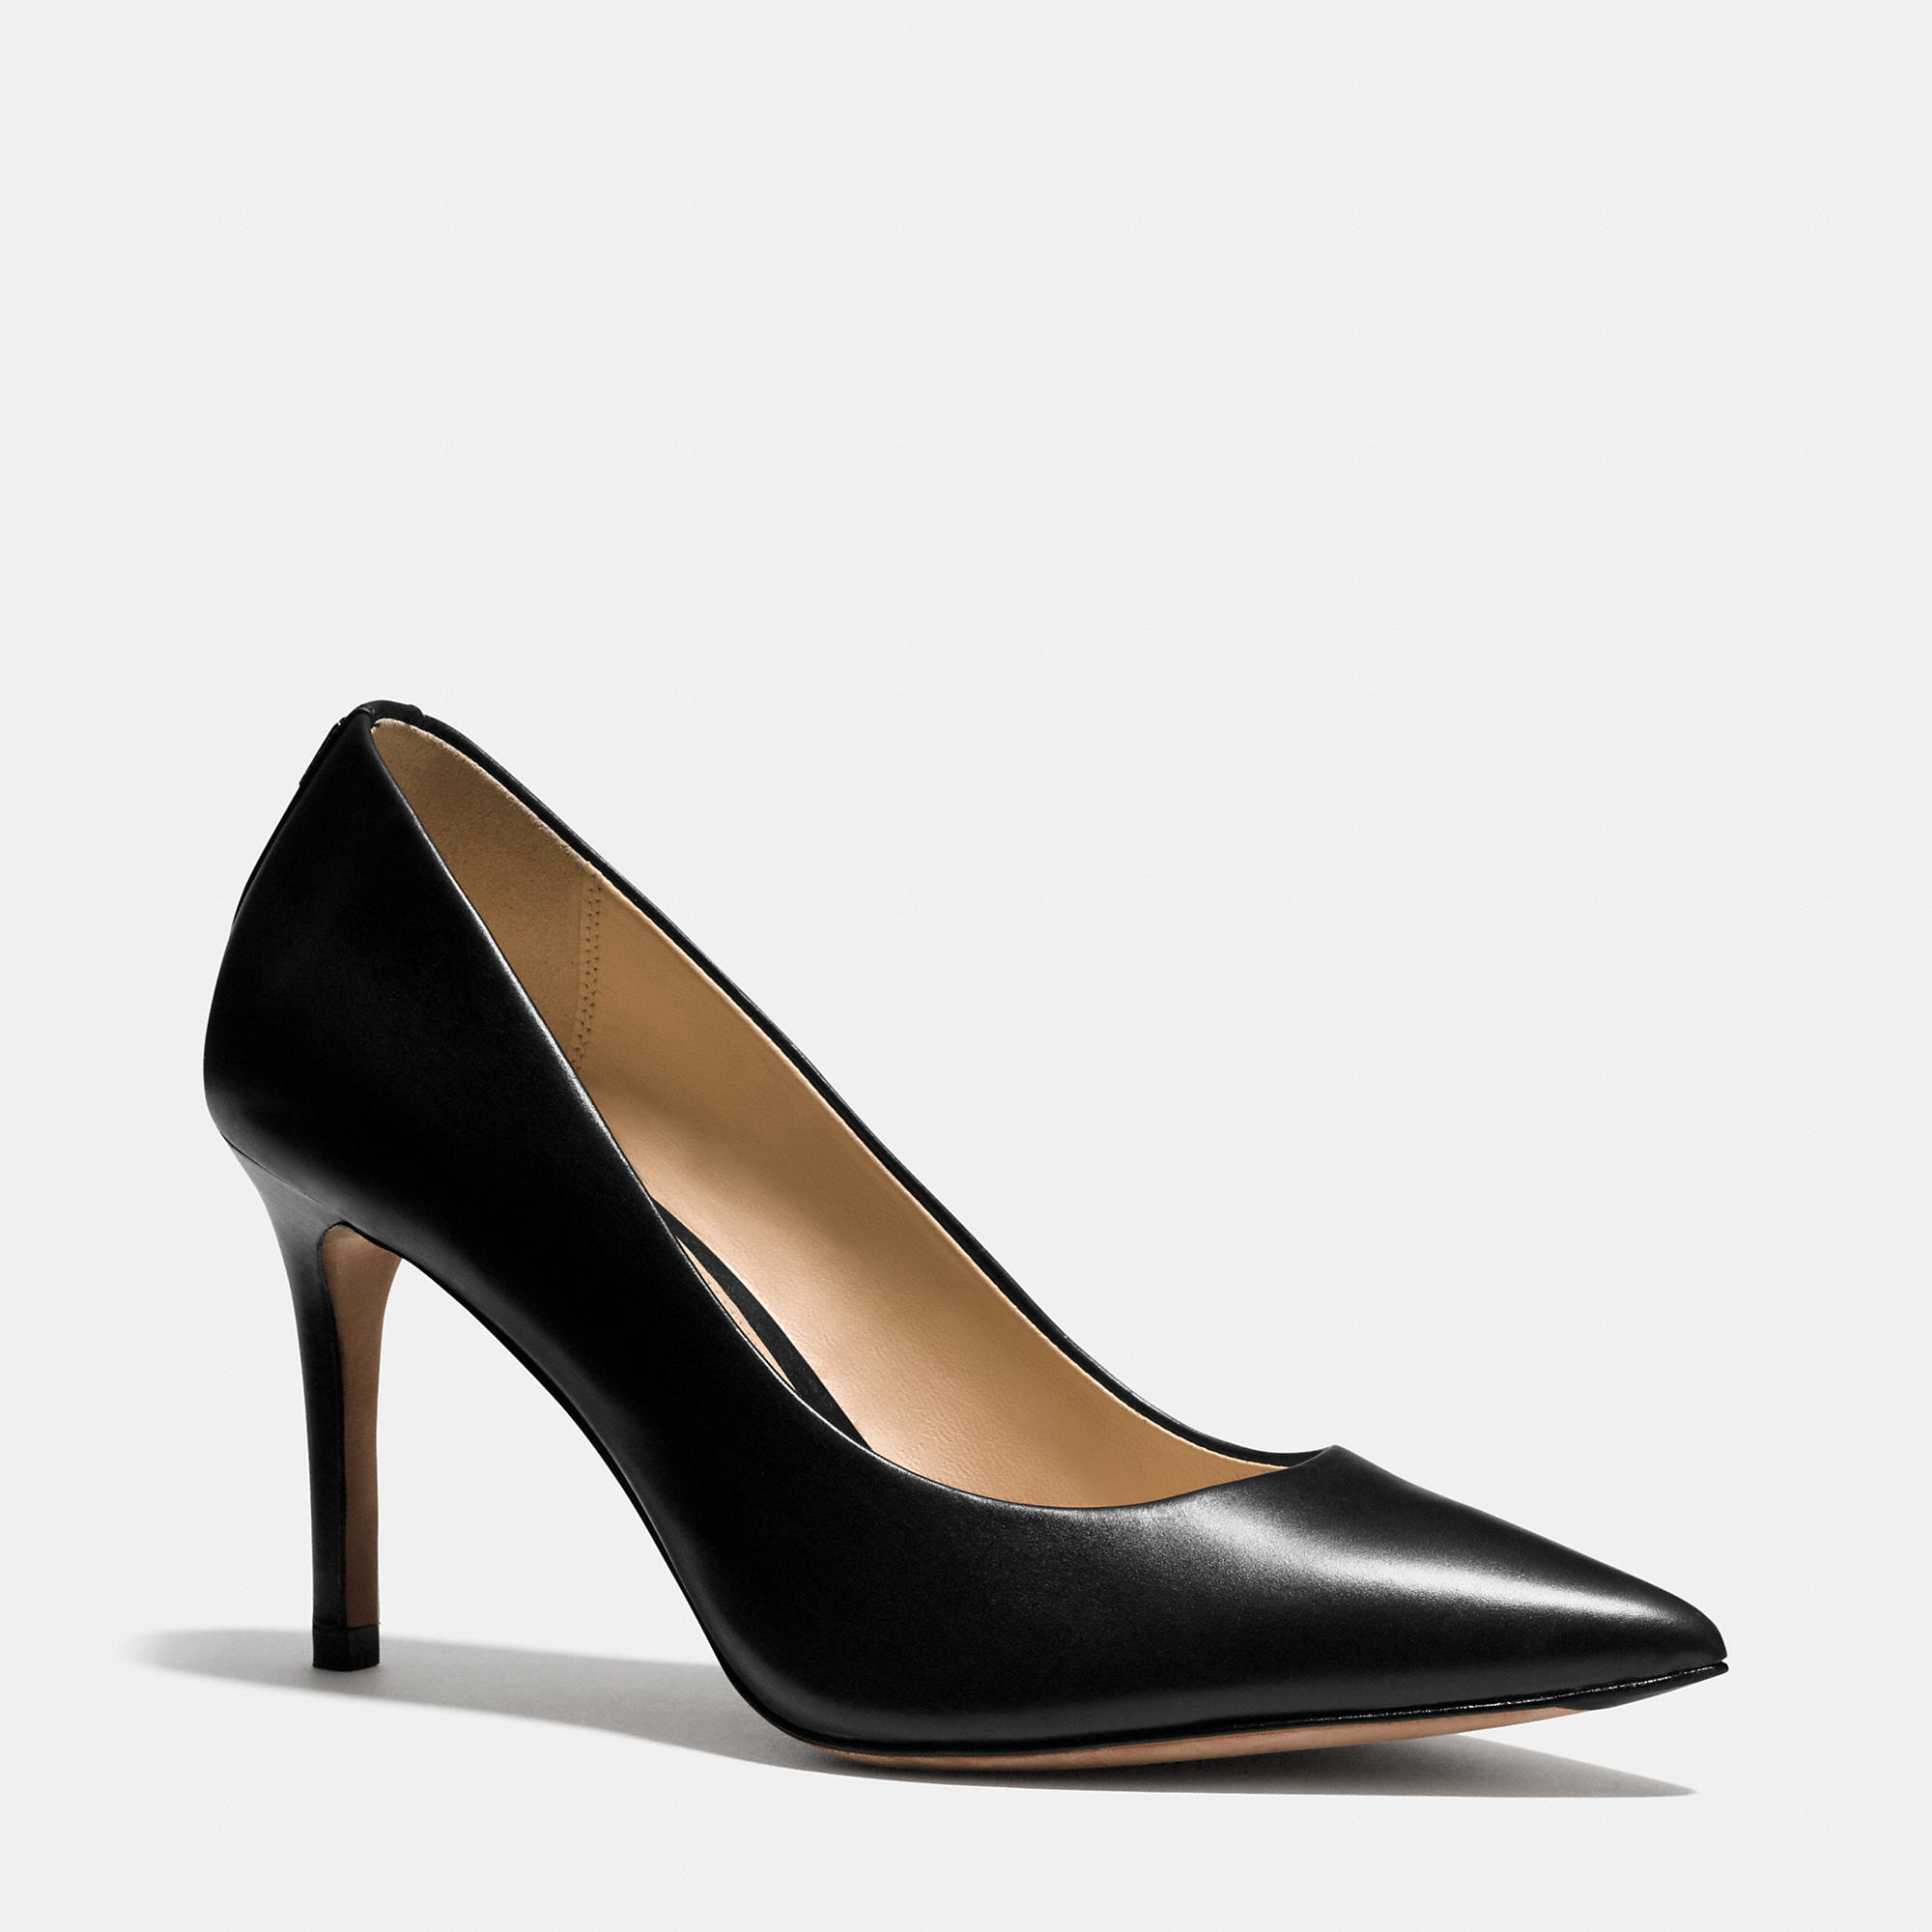 Lyst - Coach Smith Heel in Black